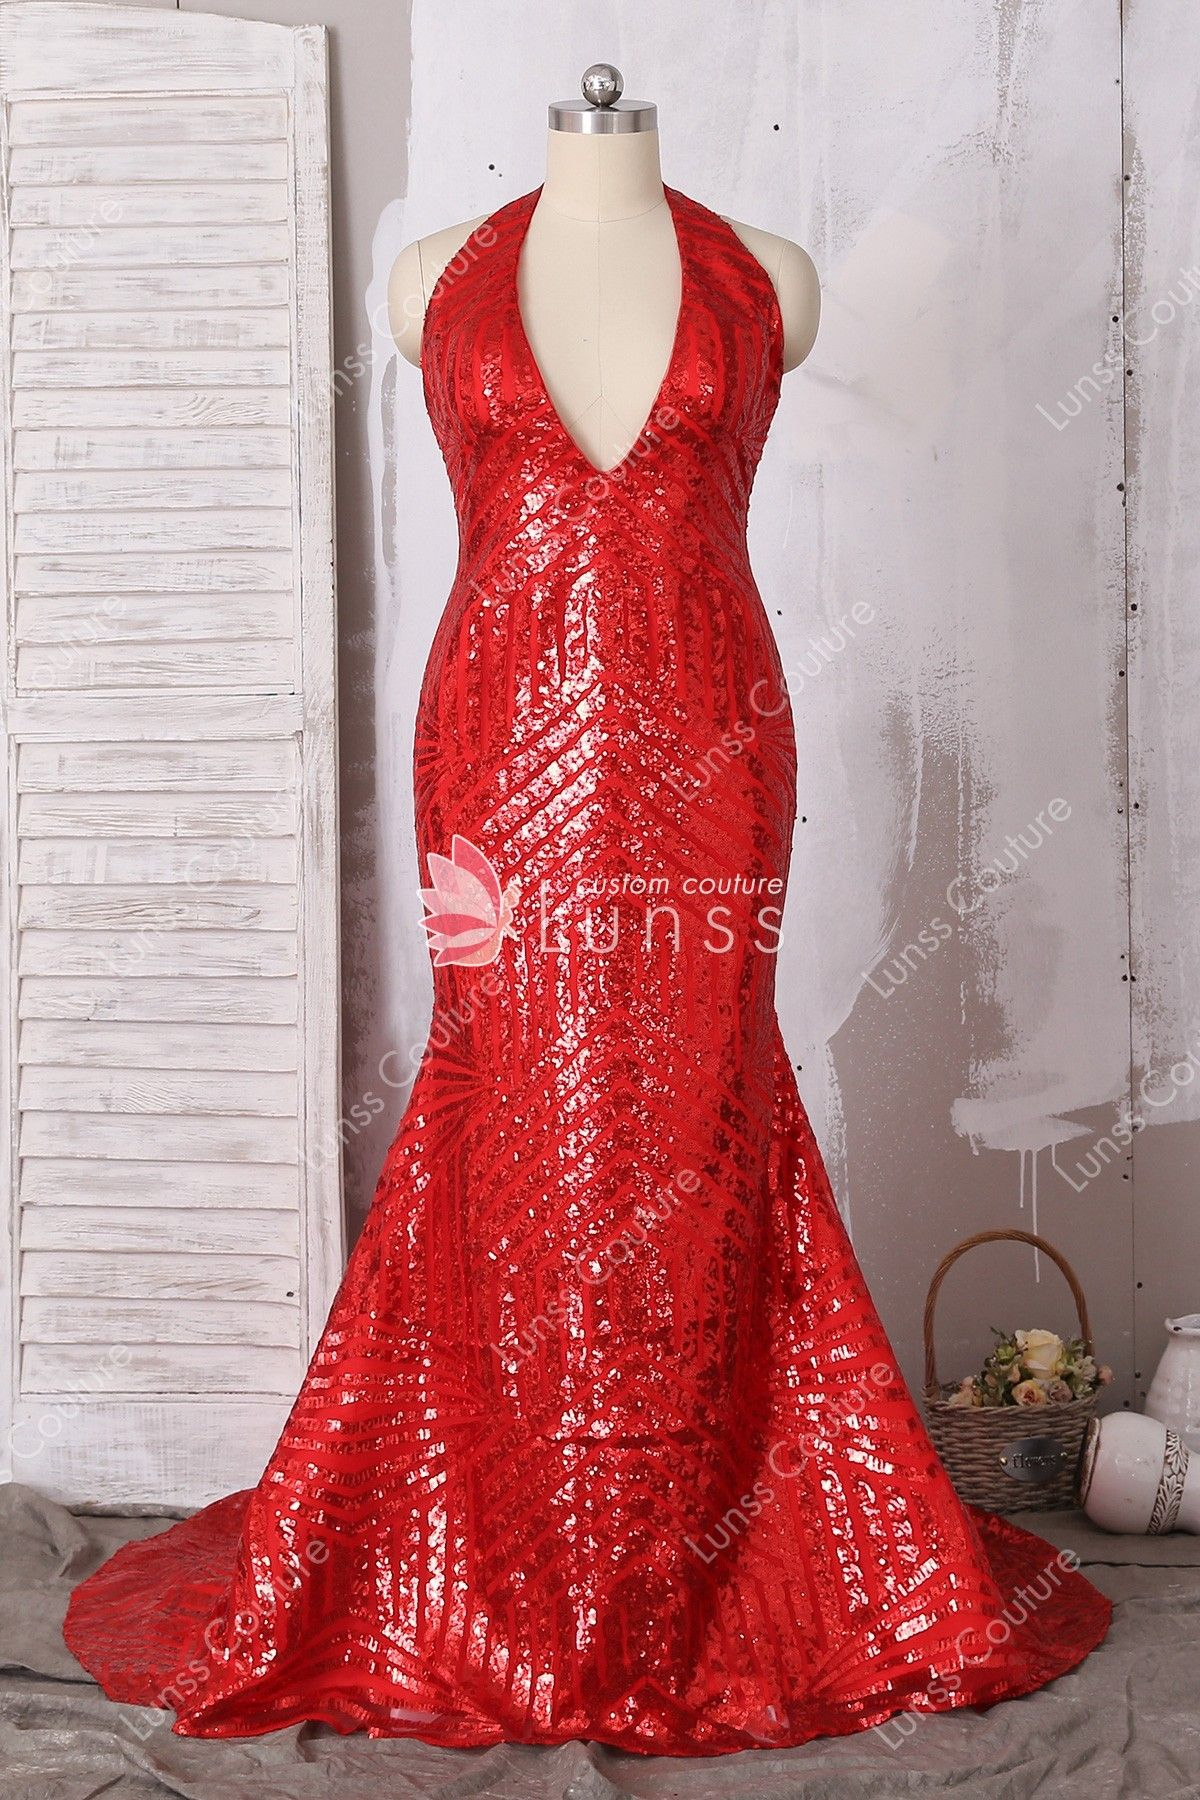 6cadcaf99c0c Red Halter Plunging Bombshell Pattern Sequin Long Prom Dress with Open Back